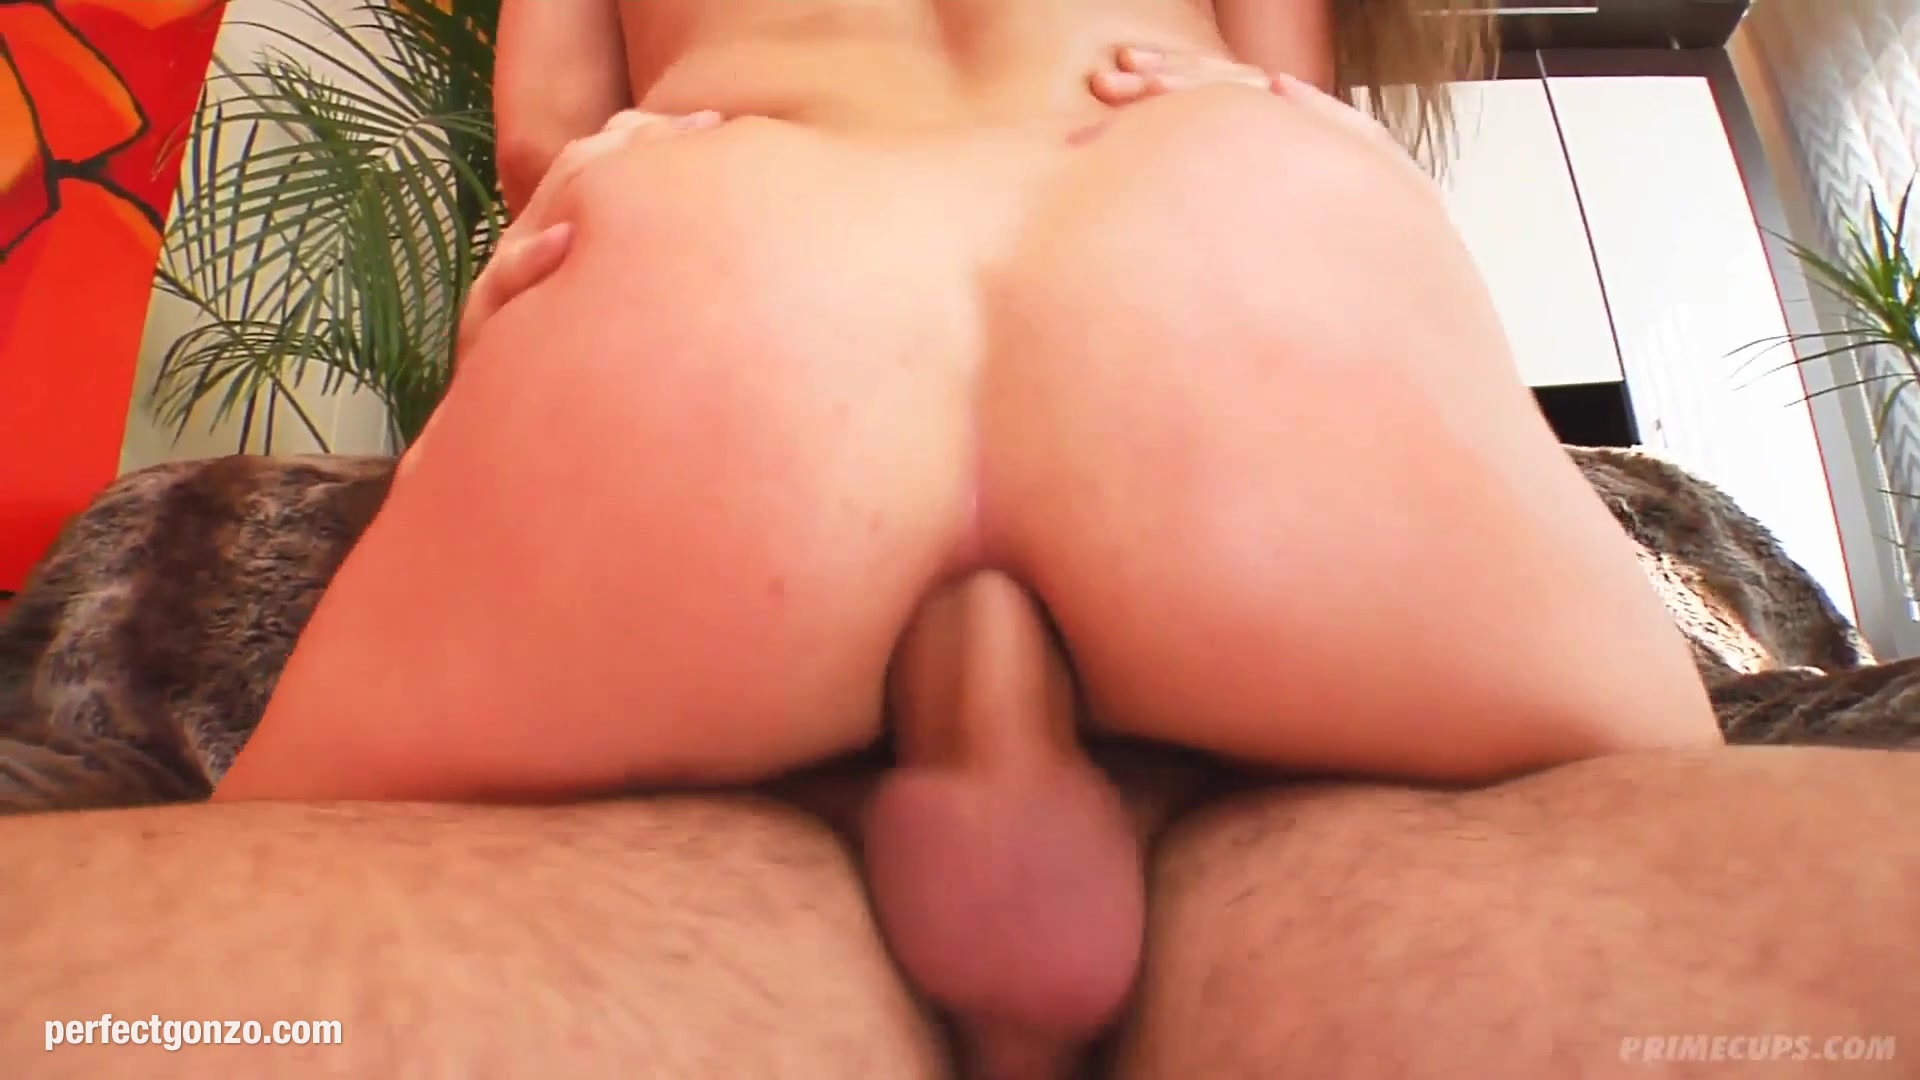 Sexy amateur lesbian kisses in party game Best porno